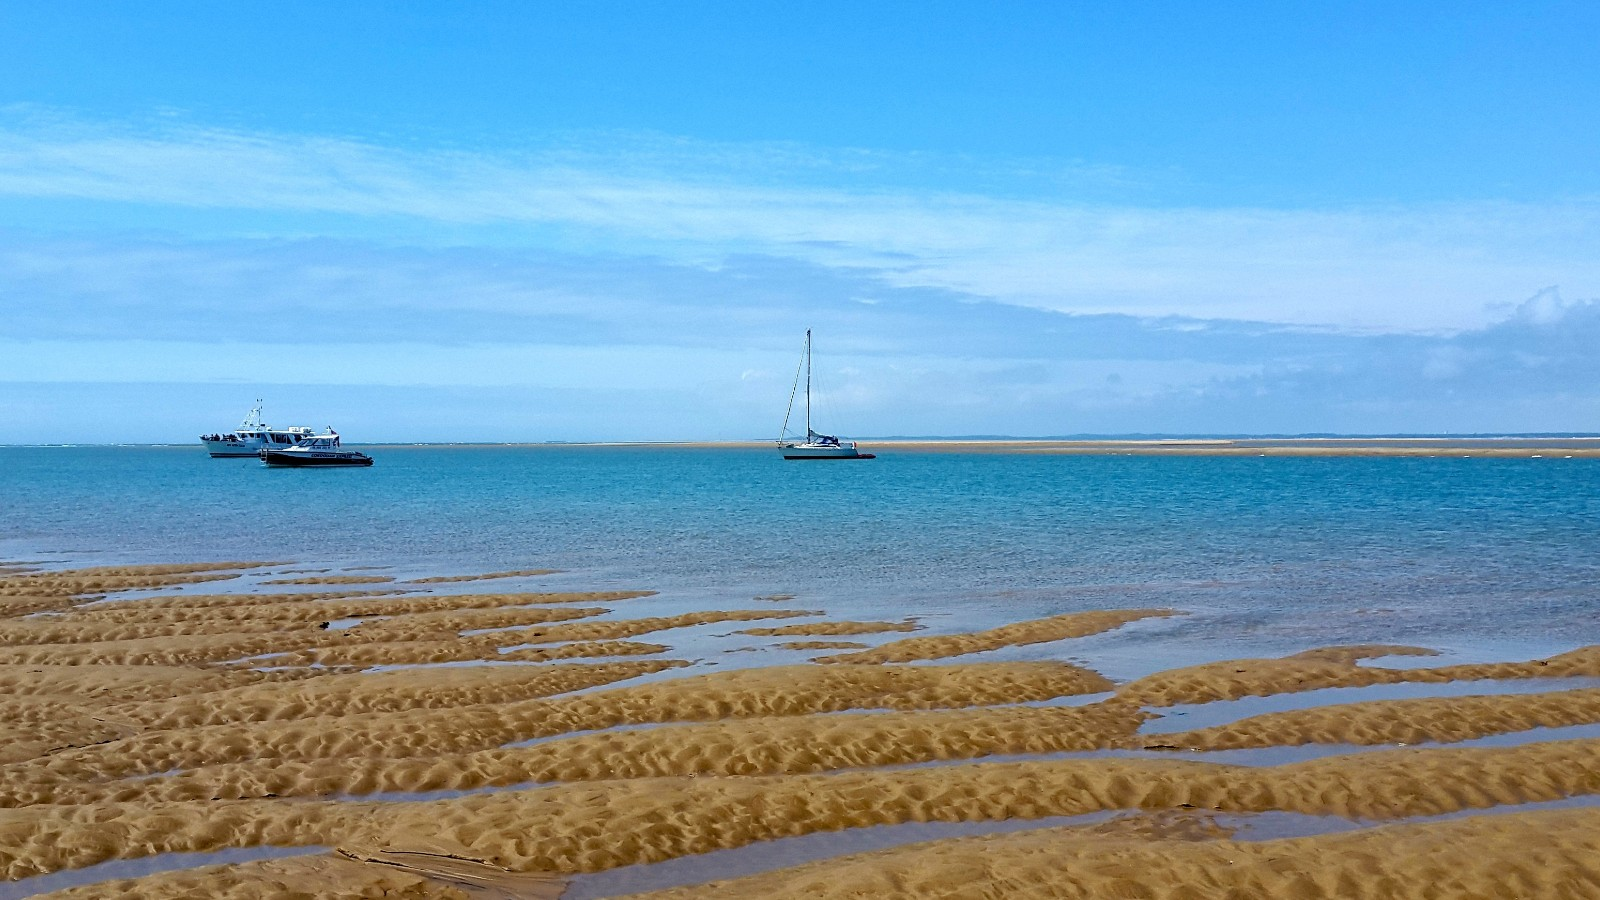 tide out on a golden sandy beach with a boat on the blue water